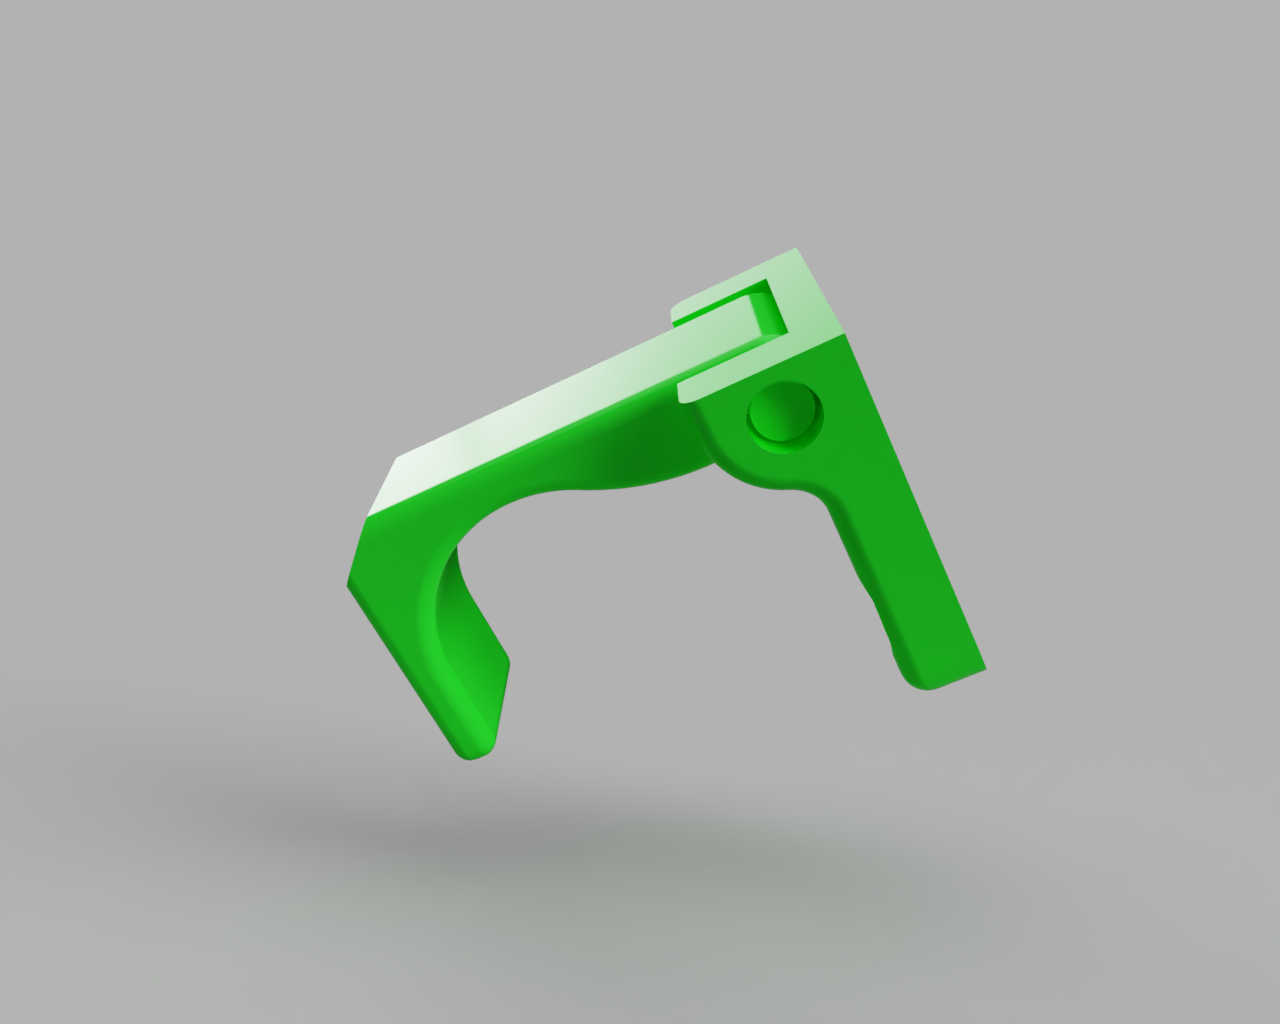 Chicken_Coop_Latch_2019-Sep-16_09-01-44AM-000_CustomizedView6594527347.png Download free STL file Simple hinged print-in-place door/gate retainer • 3D printer design, 3D-Designs